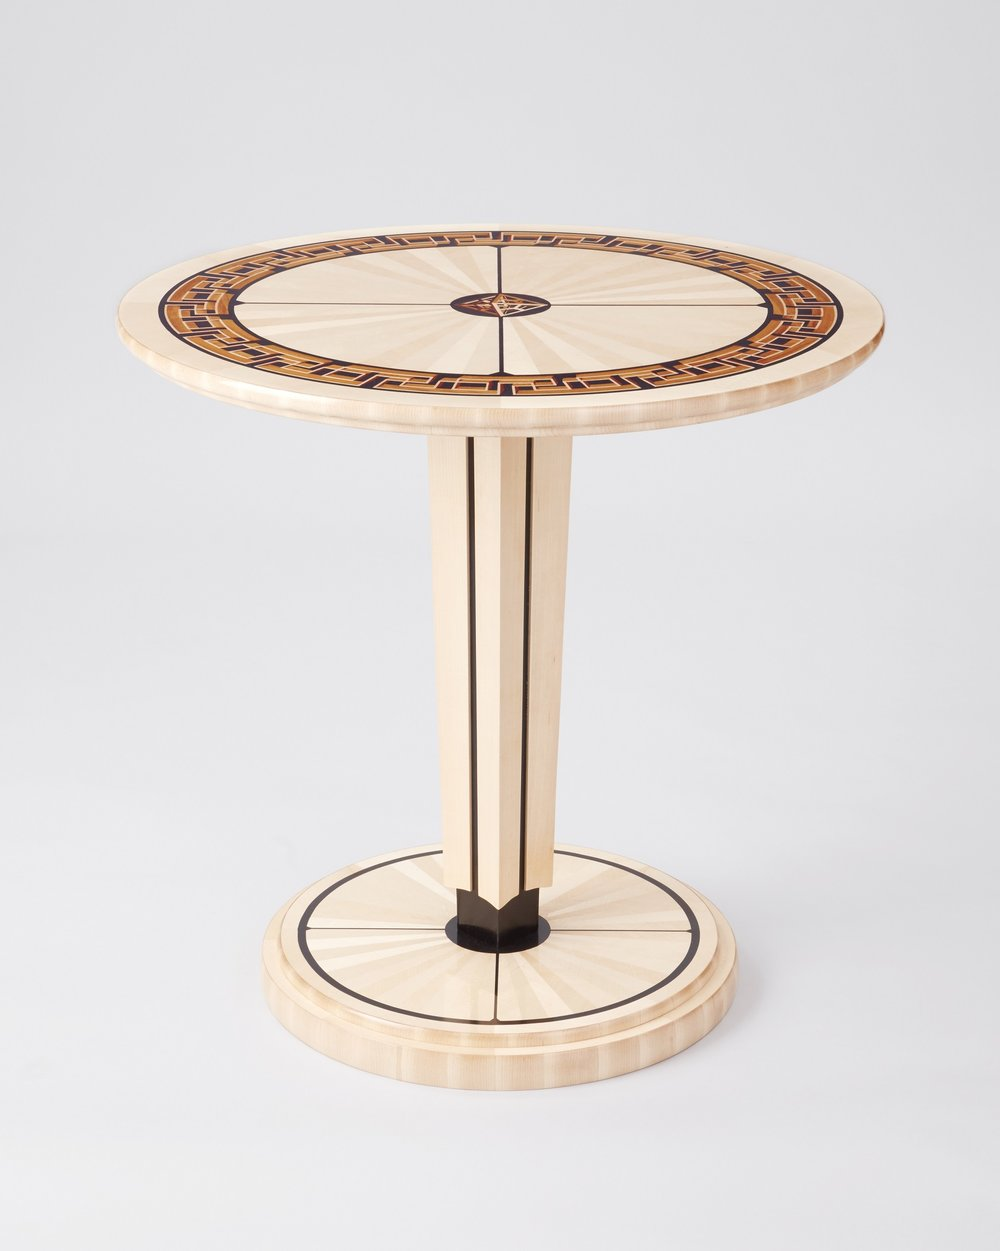 """Labyrinth Table"" 1st place winner 2017 Veneer Tech Craftsman Challenge furniture category."